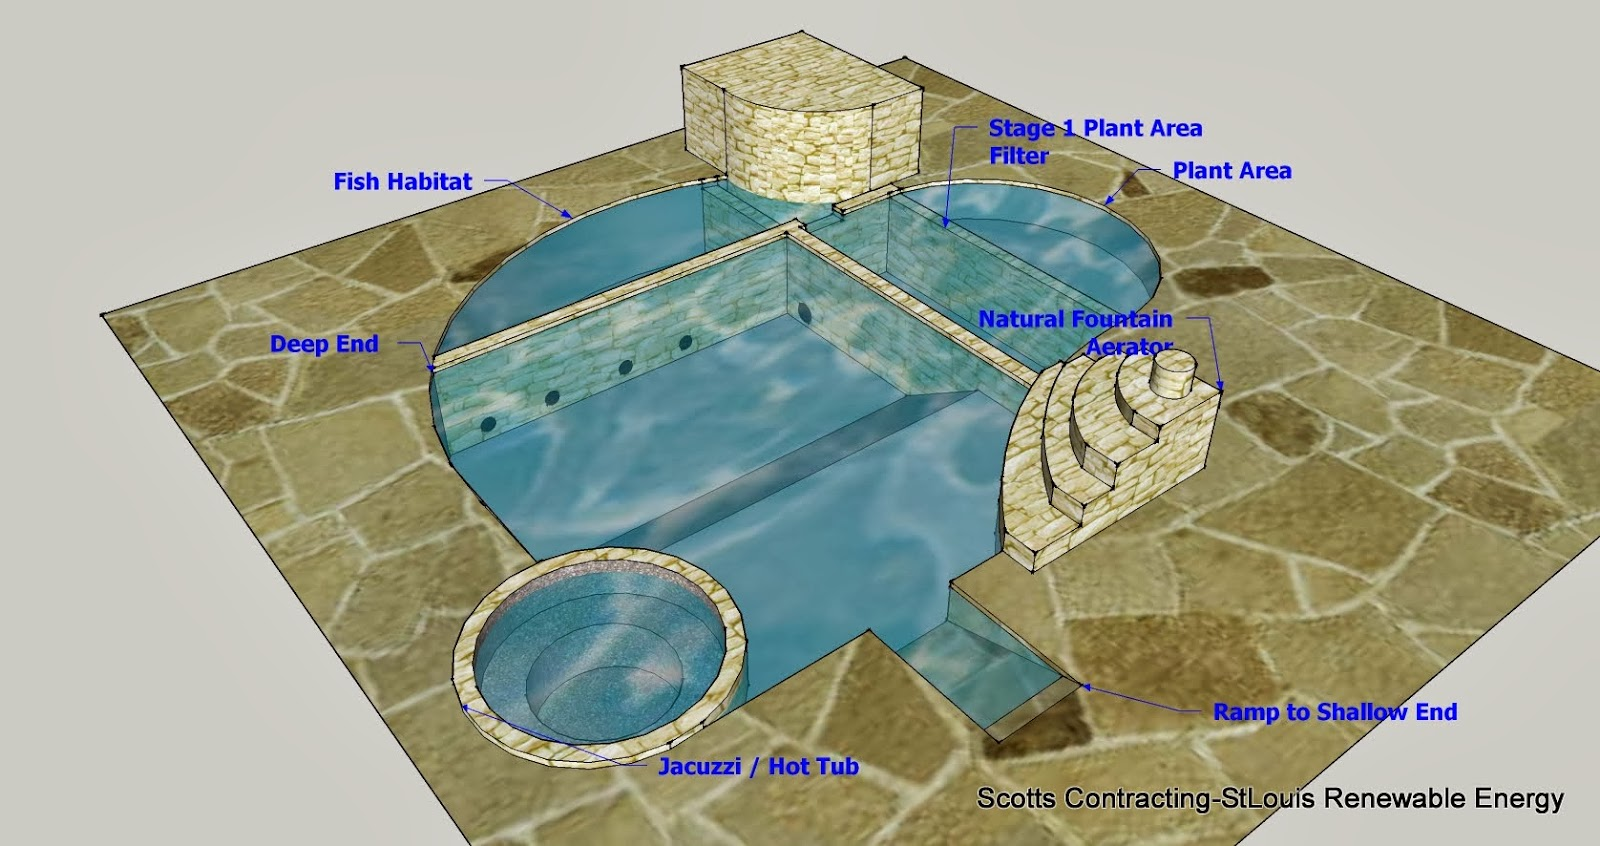 Natural Swimming Pool Design with Fish Habitat and Jacuzzi, Handicap Access Ramp, Fountain, Aquatic Plant Habitat, Pump House